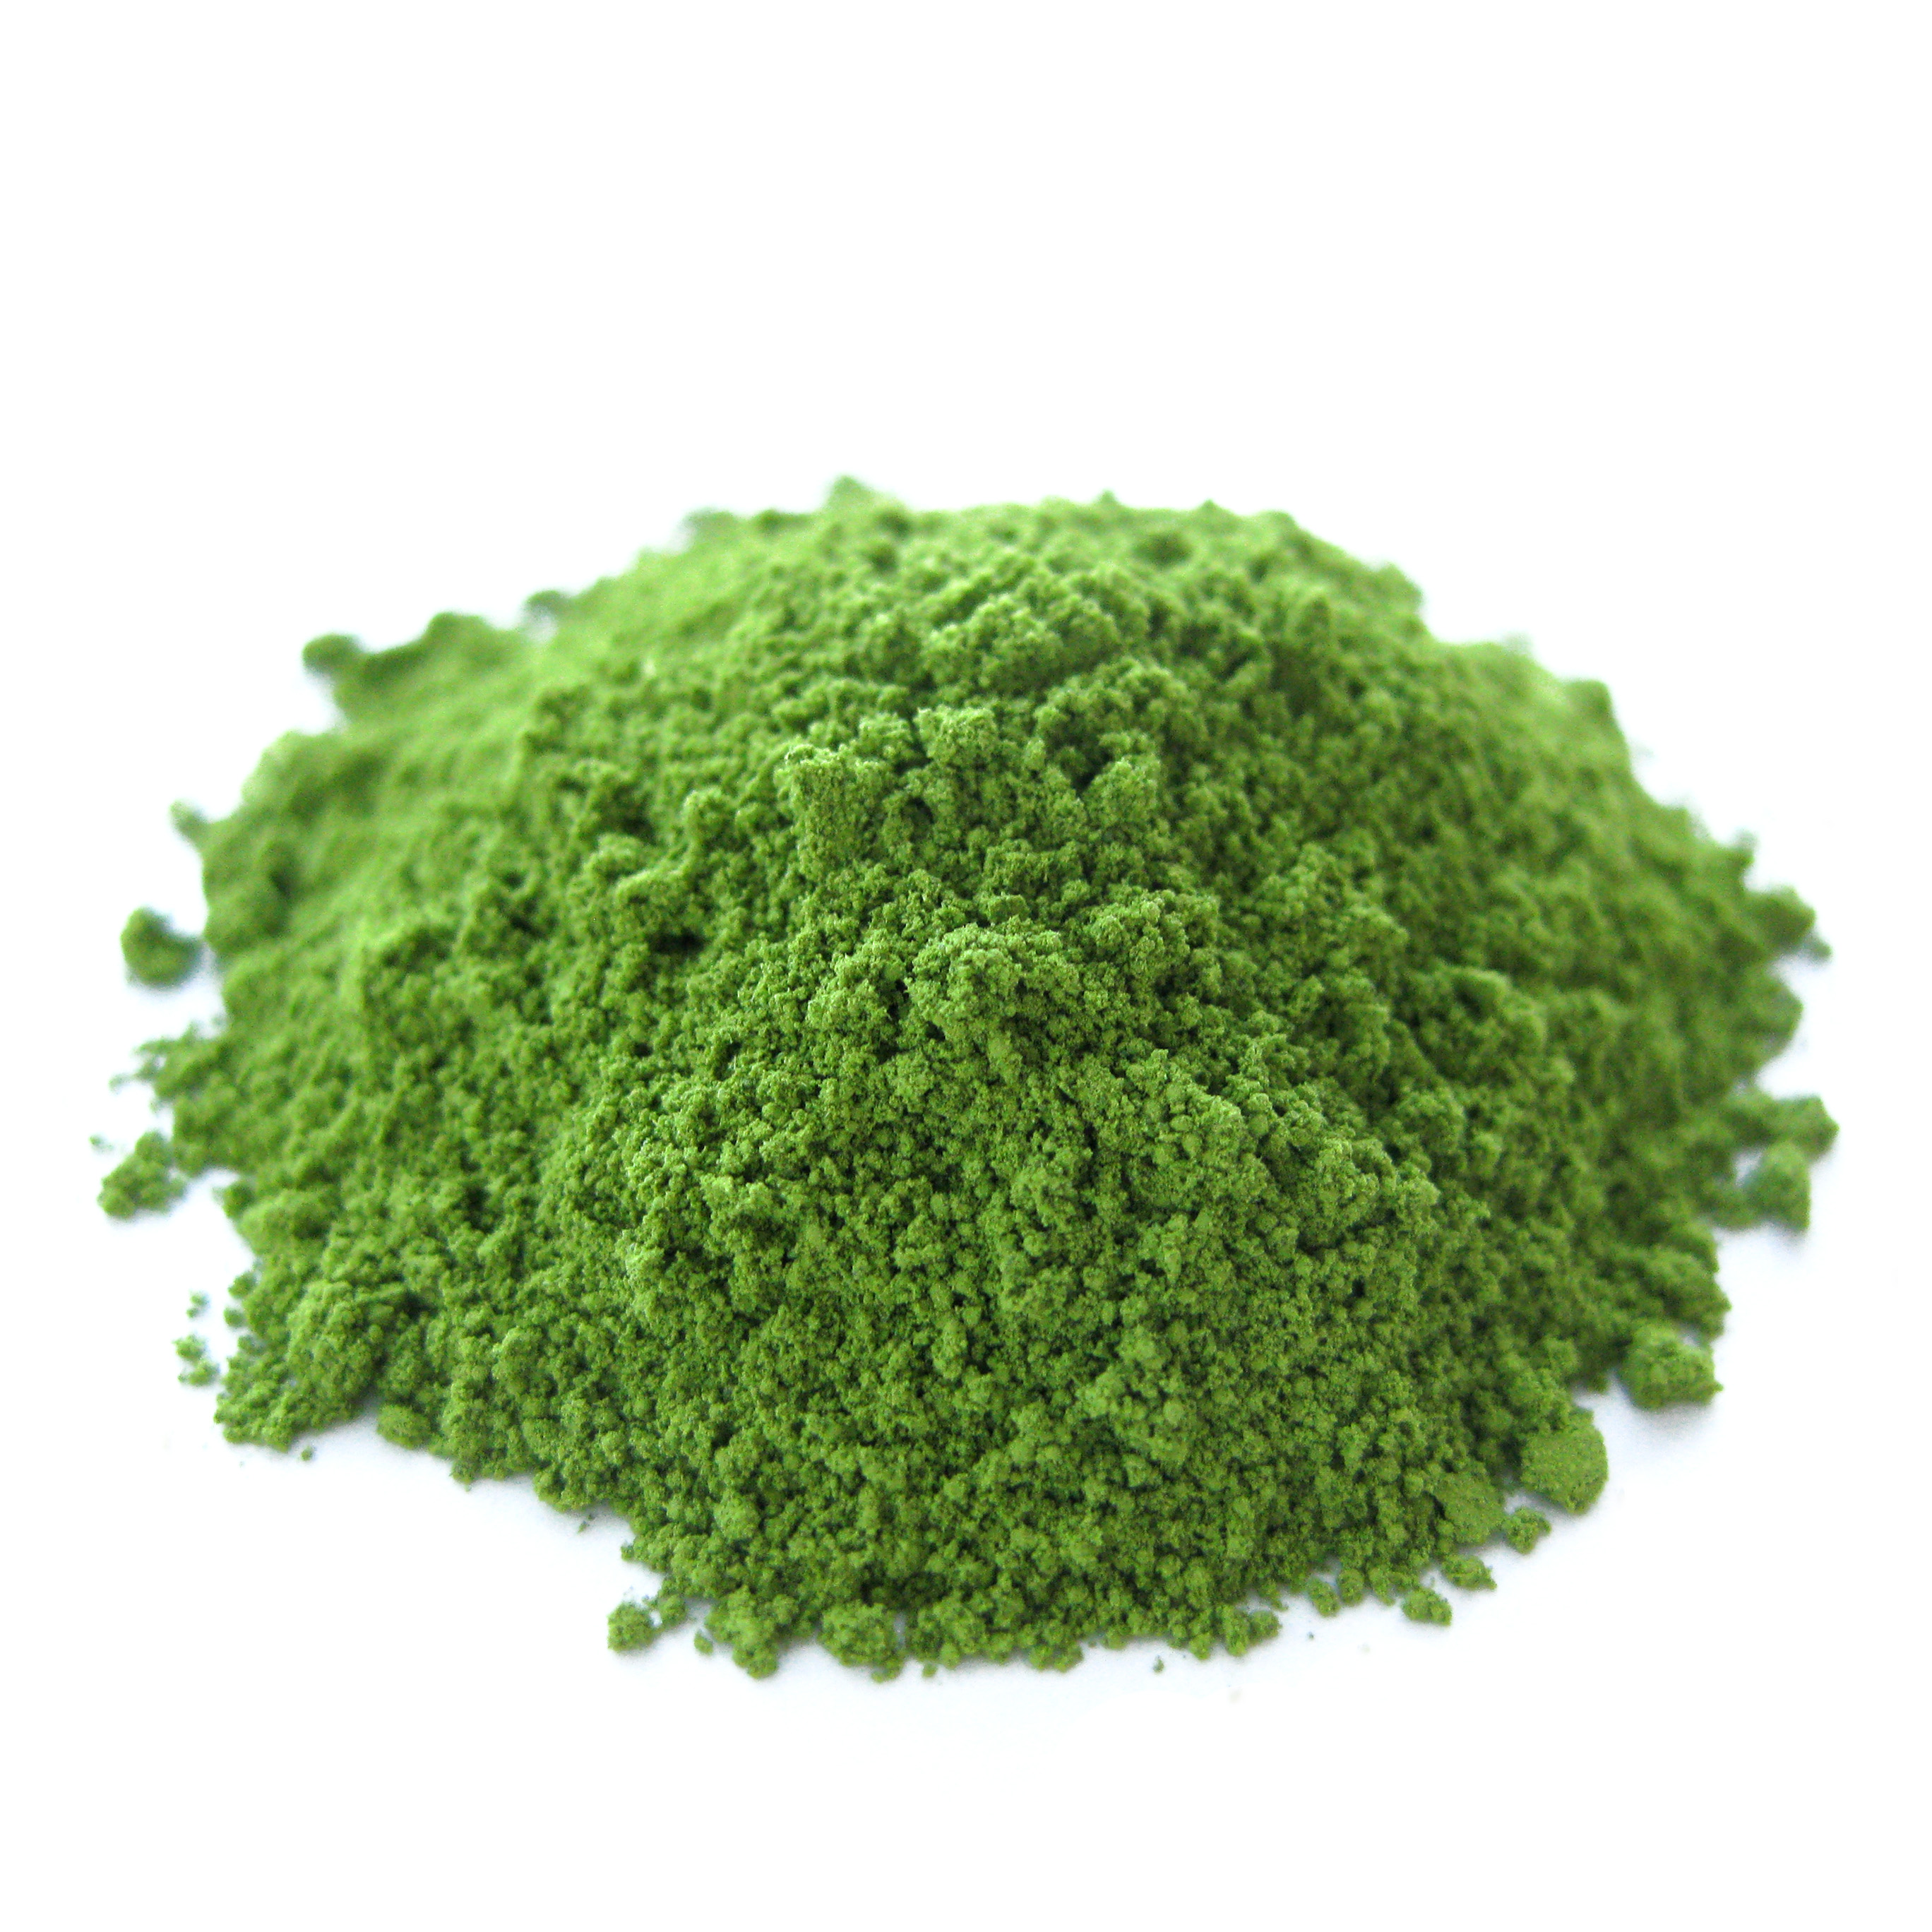 Matcha Market growth and its detail analysis by top key players interpreted by a new report: Sun Time, Kissa Tea, AIYA America, AOI Tea